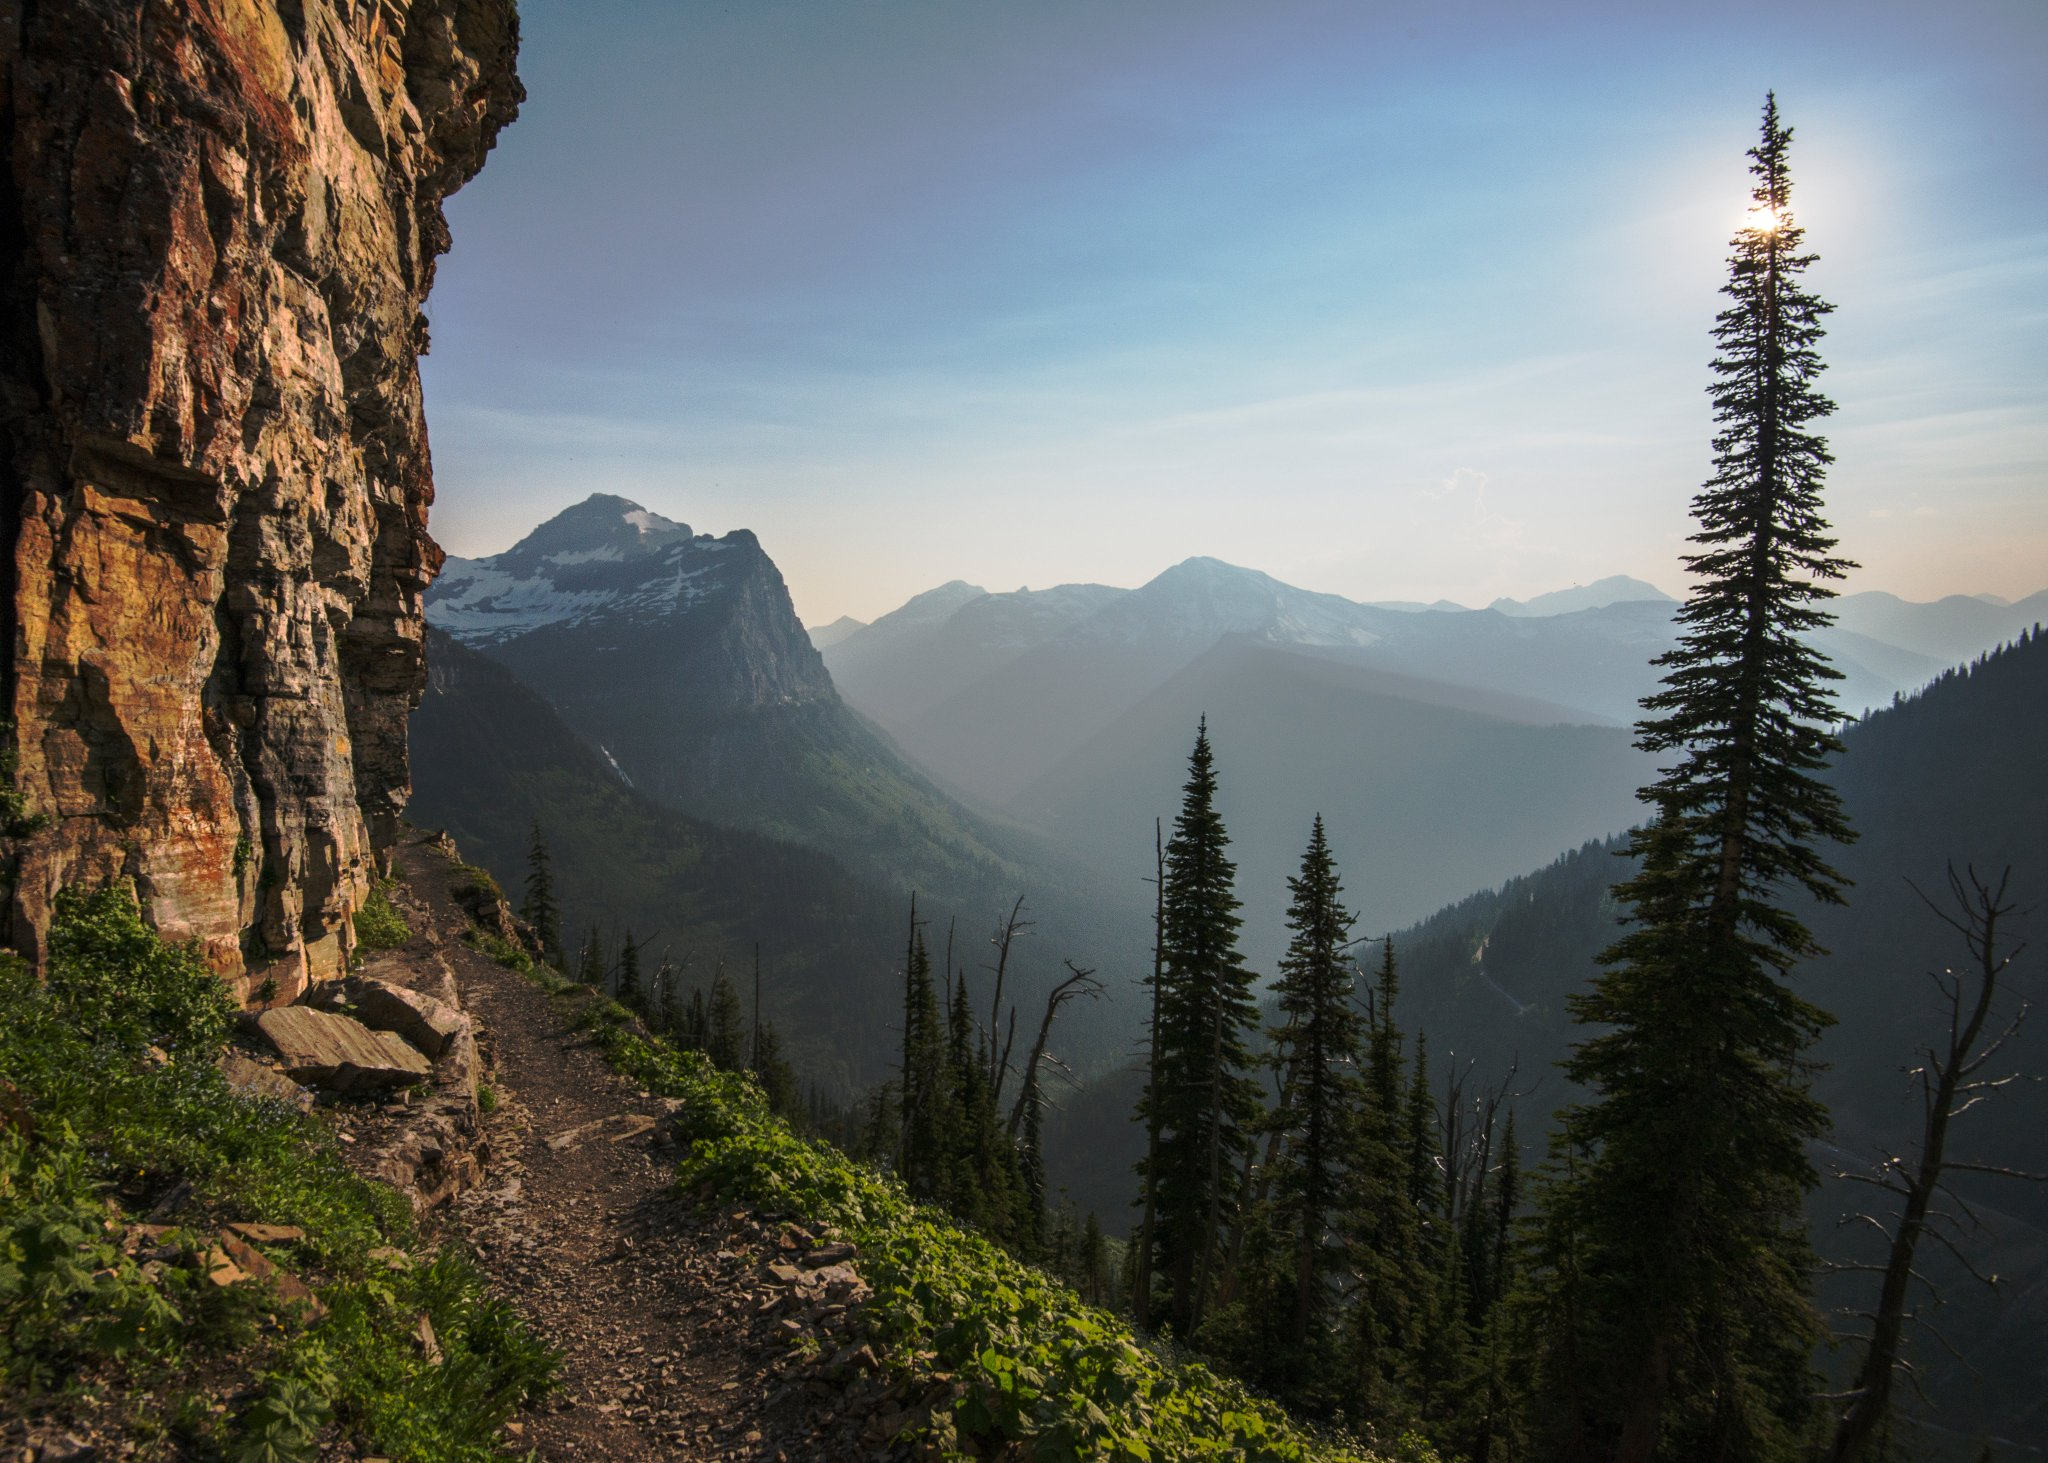 The paths are calling and you must go. Get to a nearby trail and celebrate #NationalTakeaHikeDay!     Photo @GlacierNPS #Montana #FindYourPark https://t.co/t7Zfax1cK3